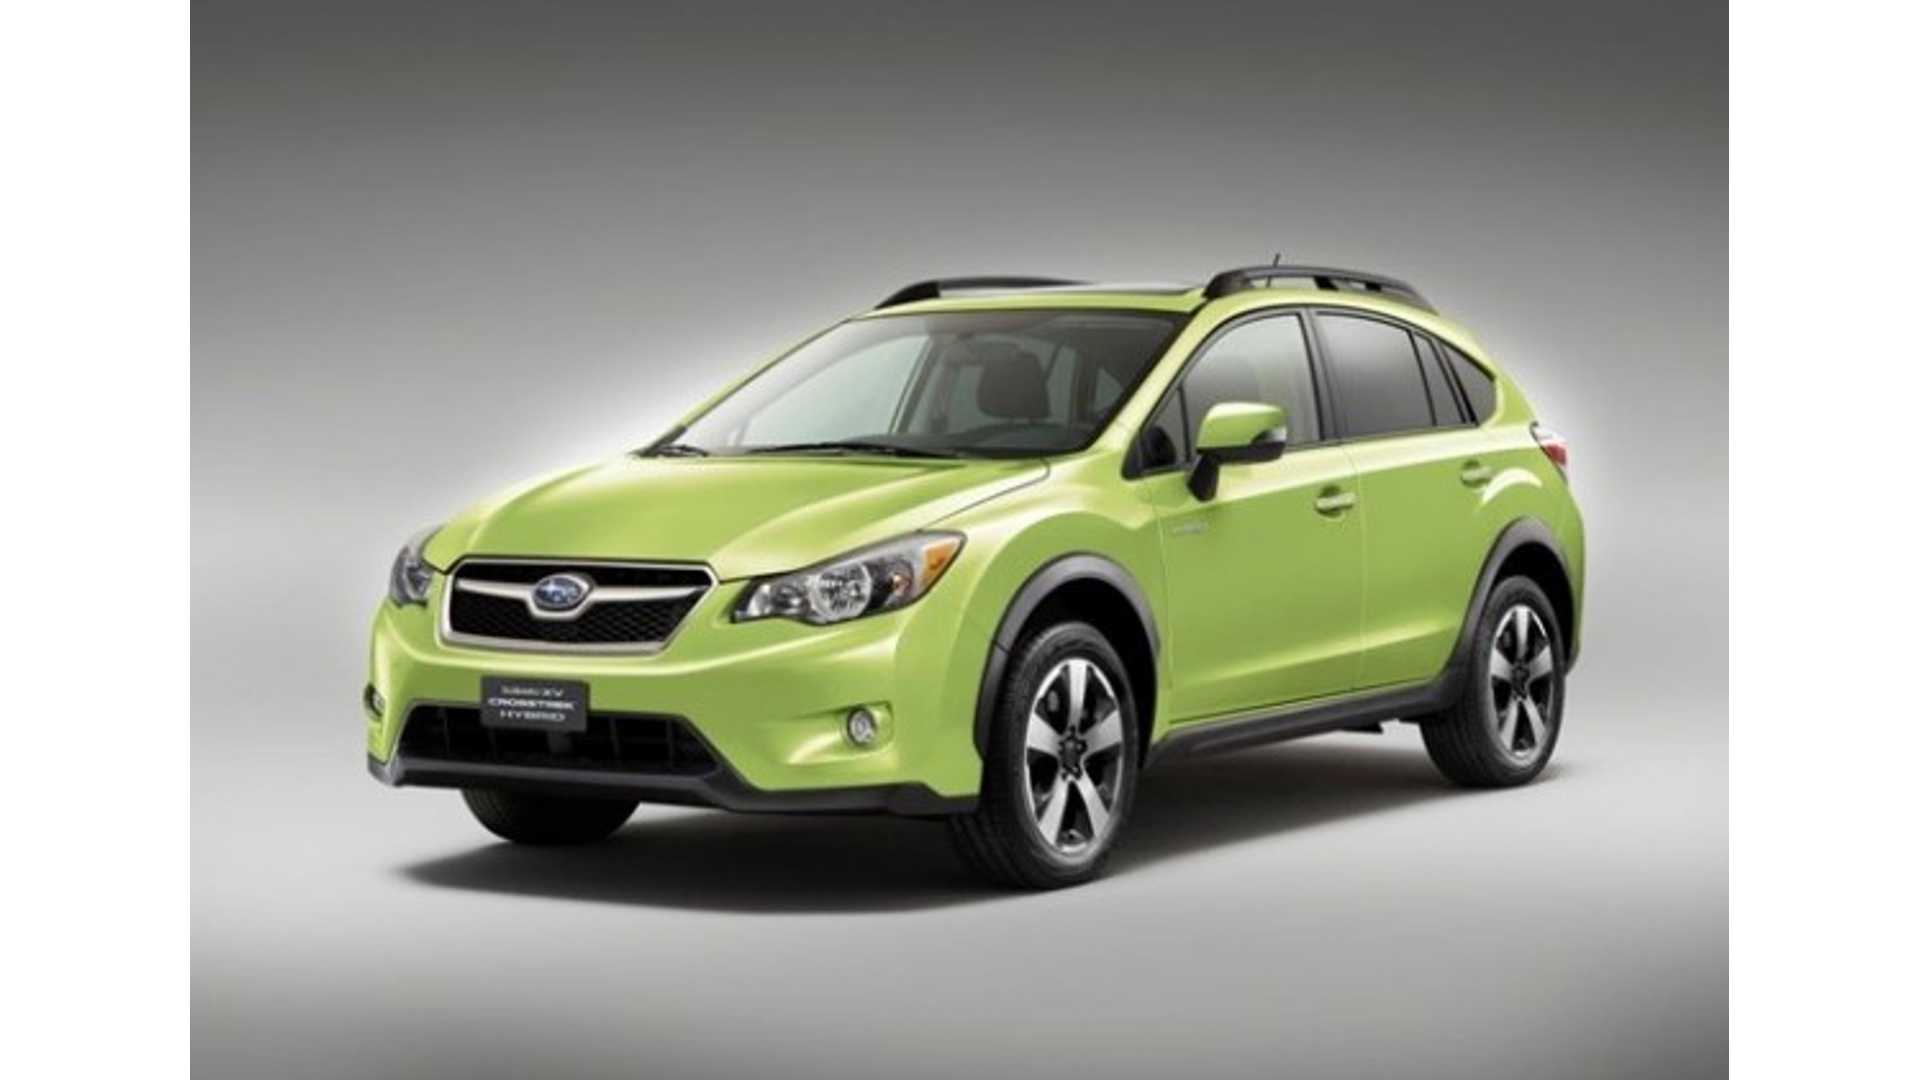 Subaru Xv Crosstrek Hybrid Is Automaker S First Step Towards 2017 Ish Plug In Vehicle